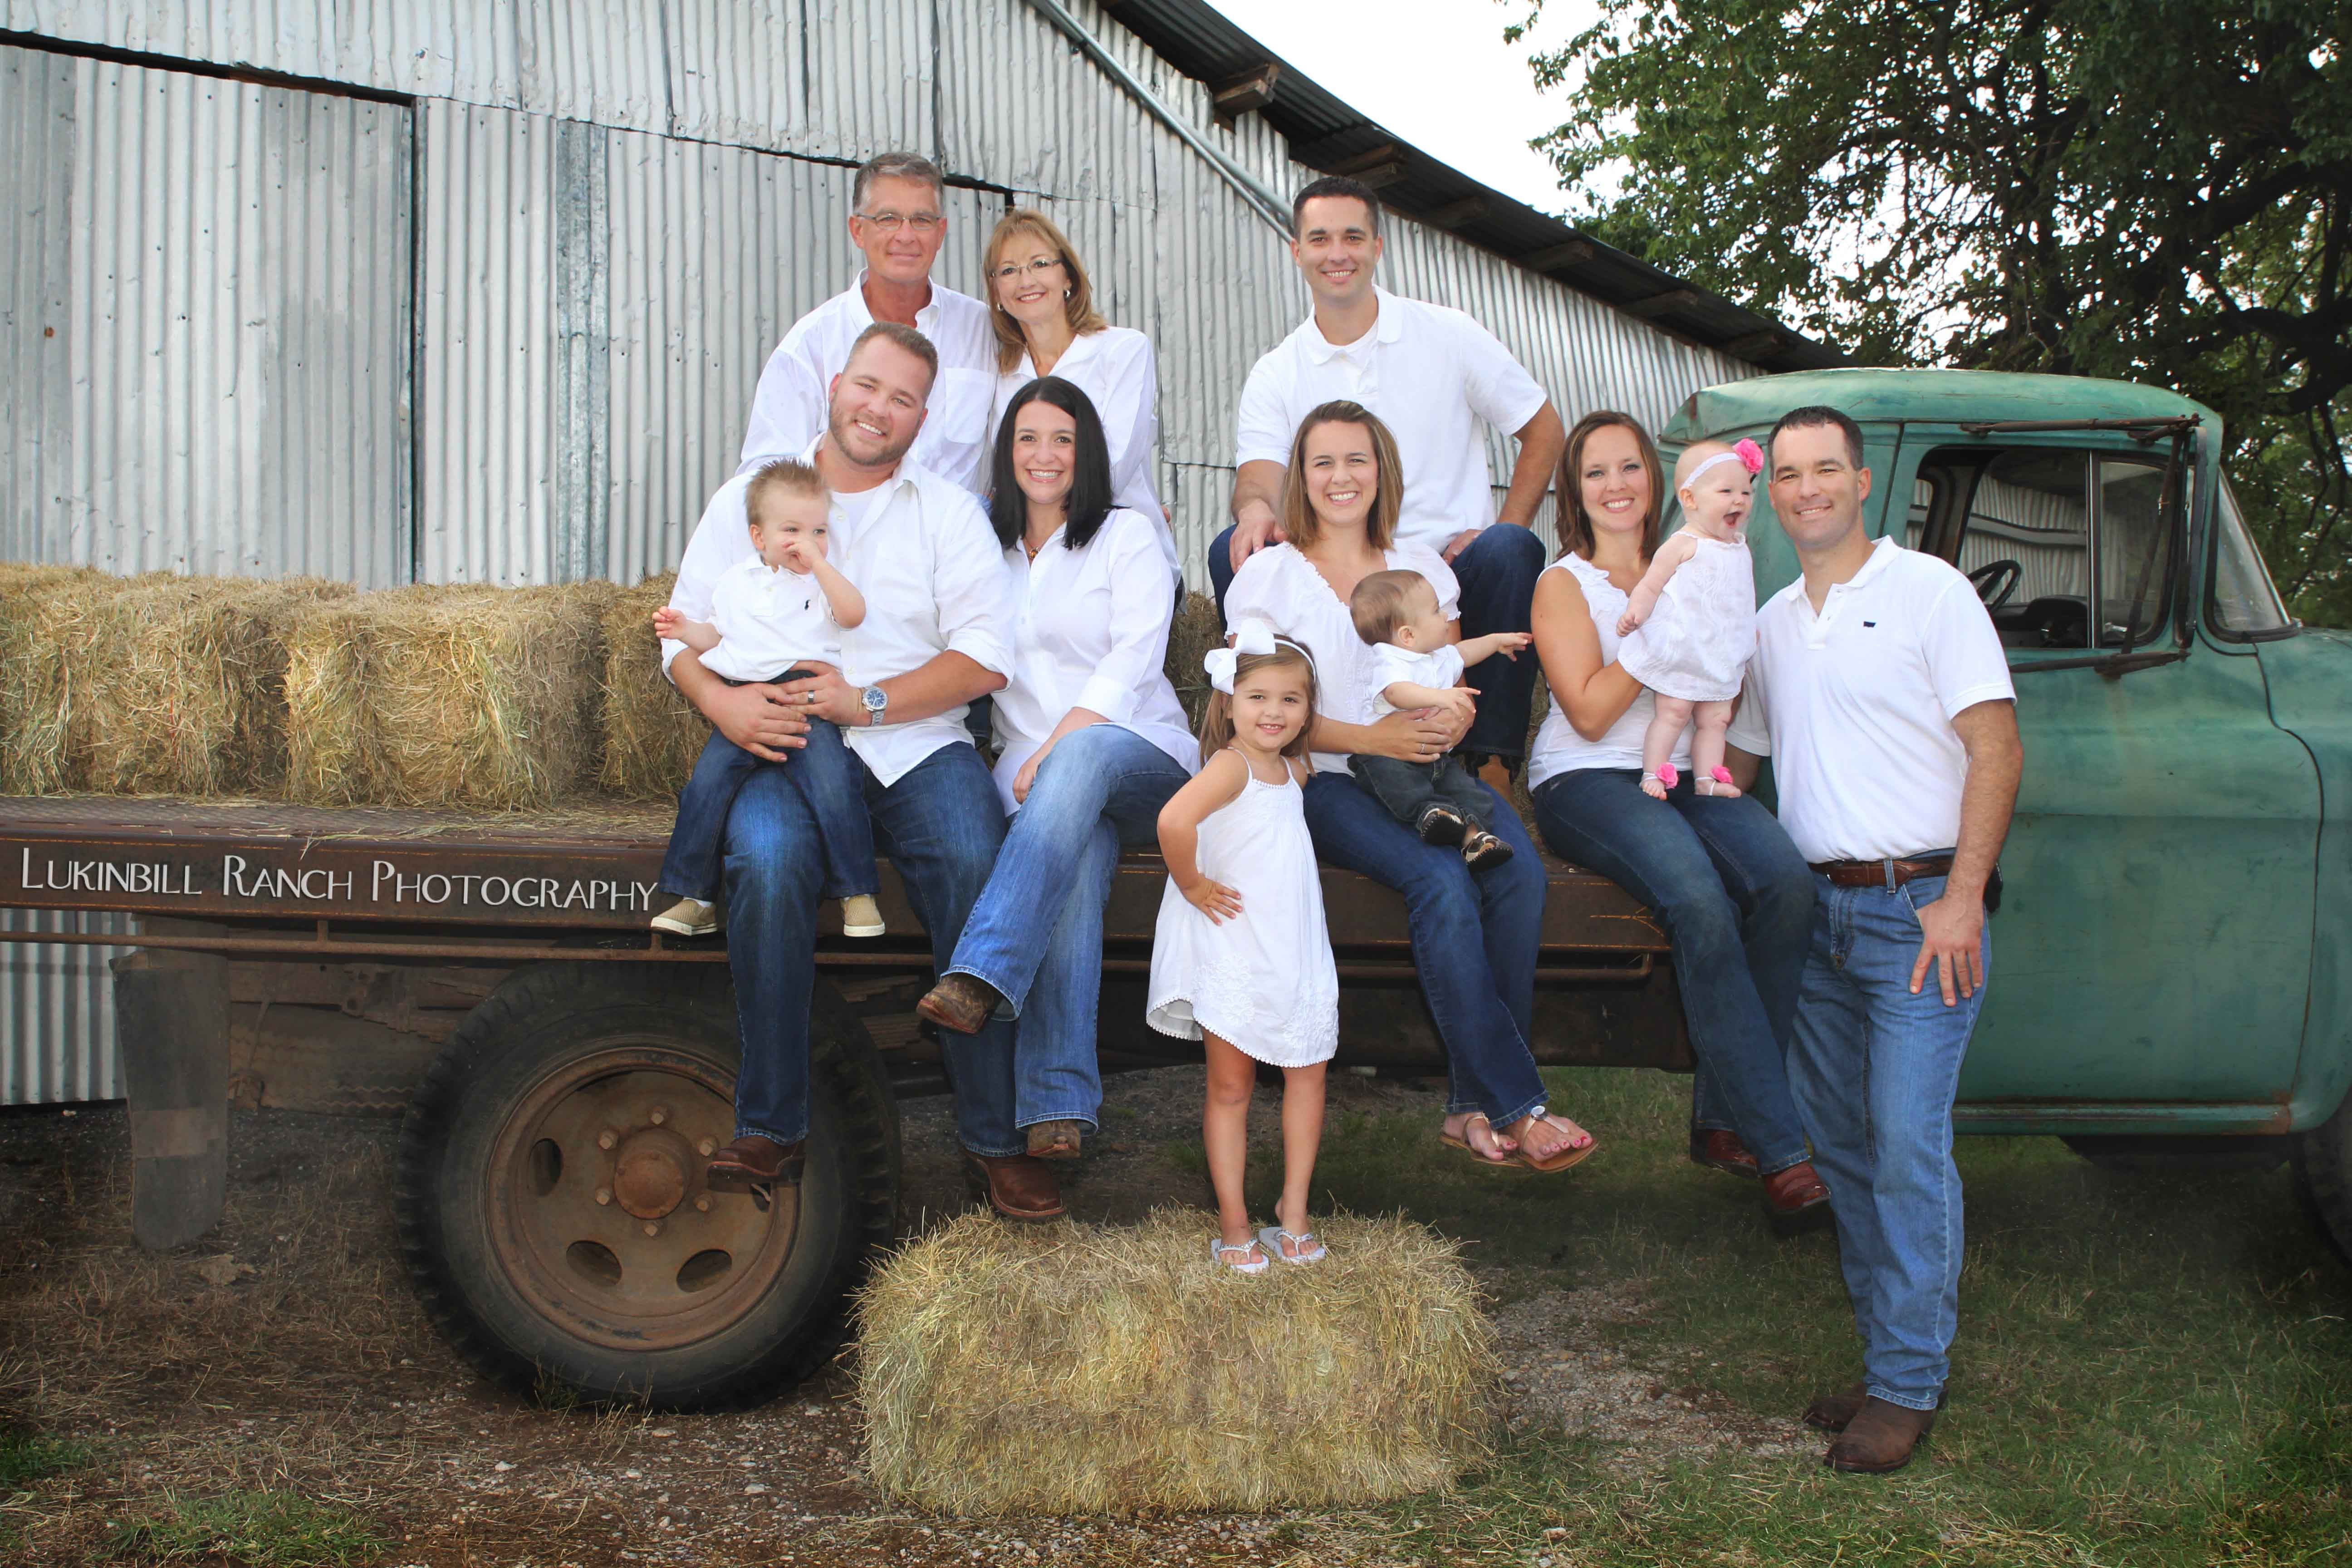 Family portraits are enhanced by adding some personal history or style, like this old farm truck.